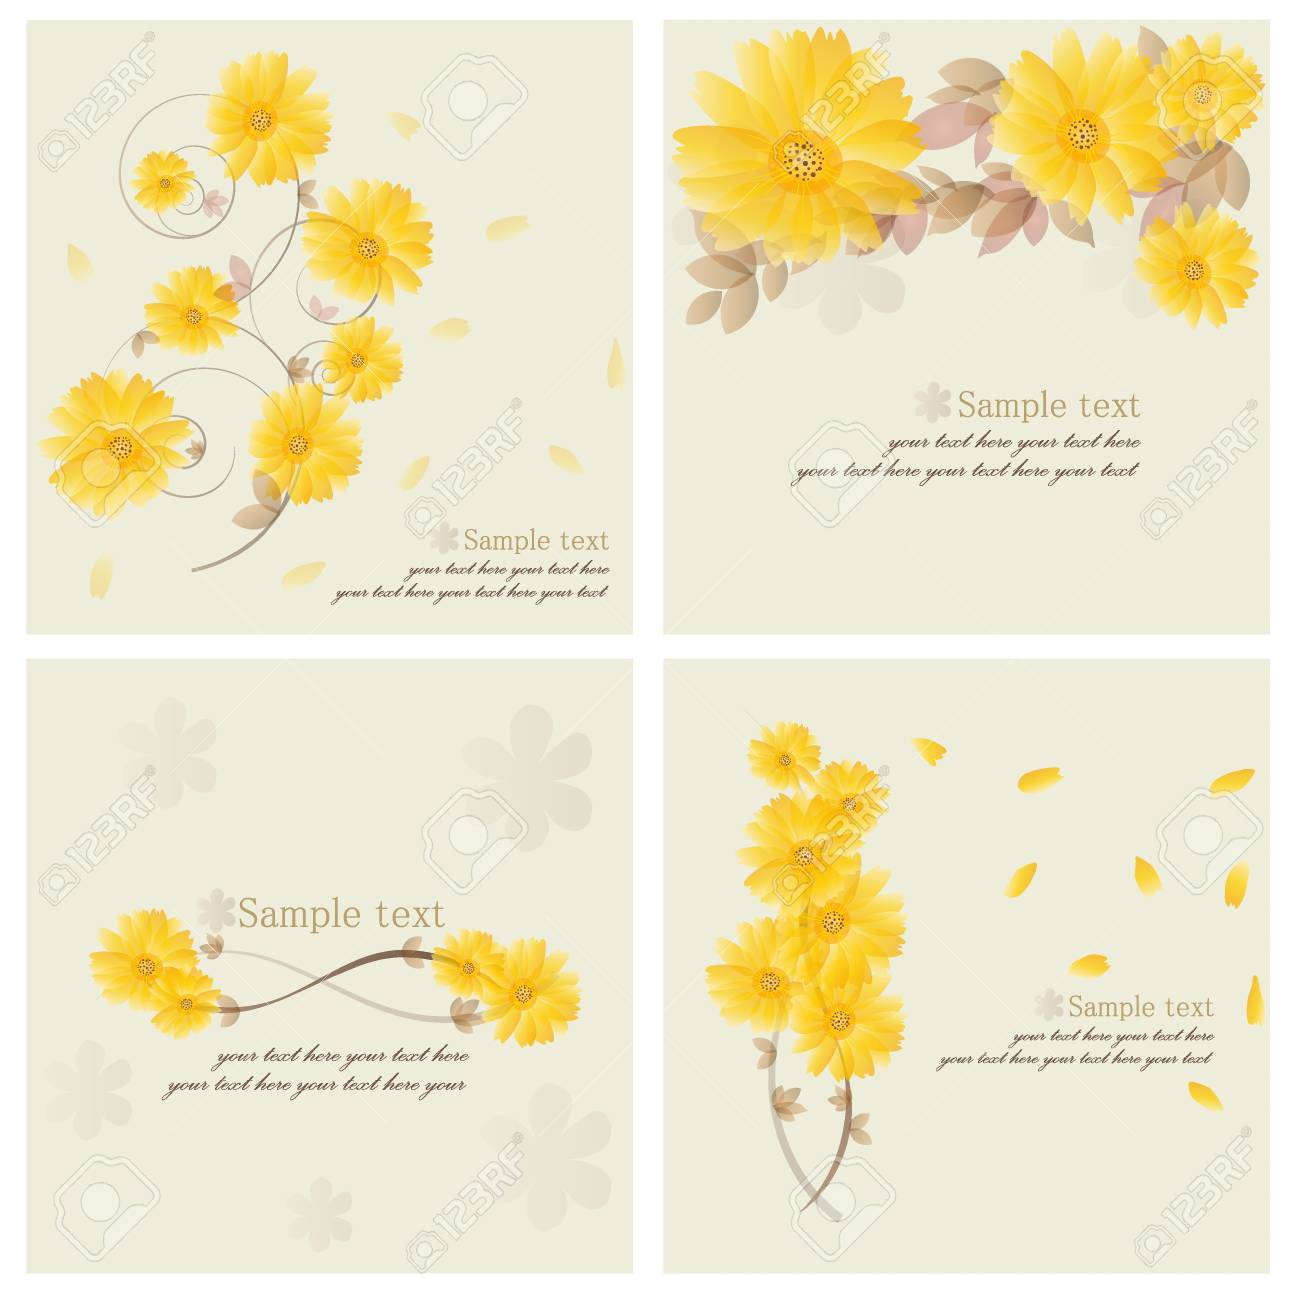 Vintage floral background - Daisies. Stock Vector - 14238328